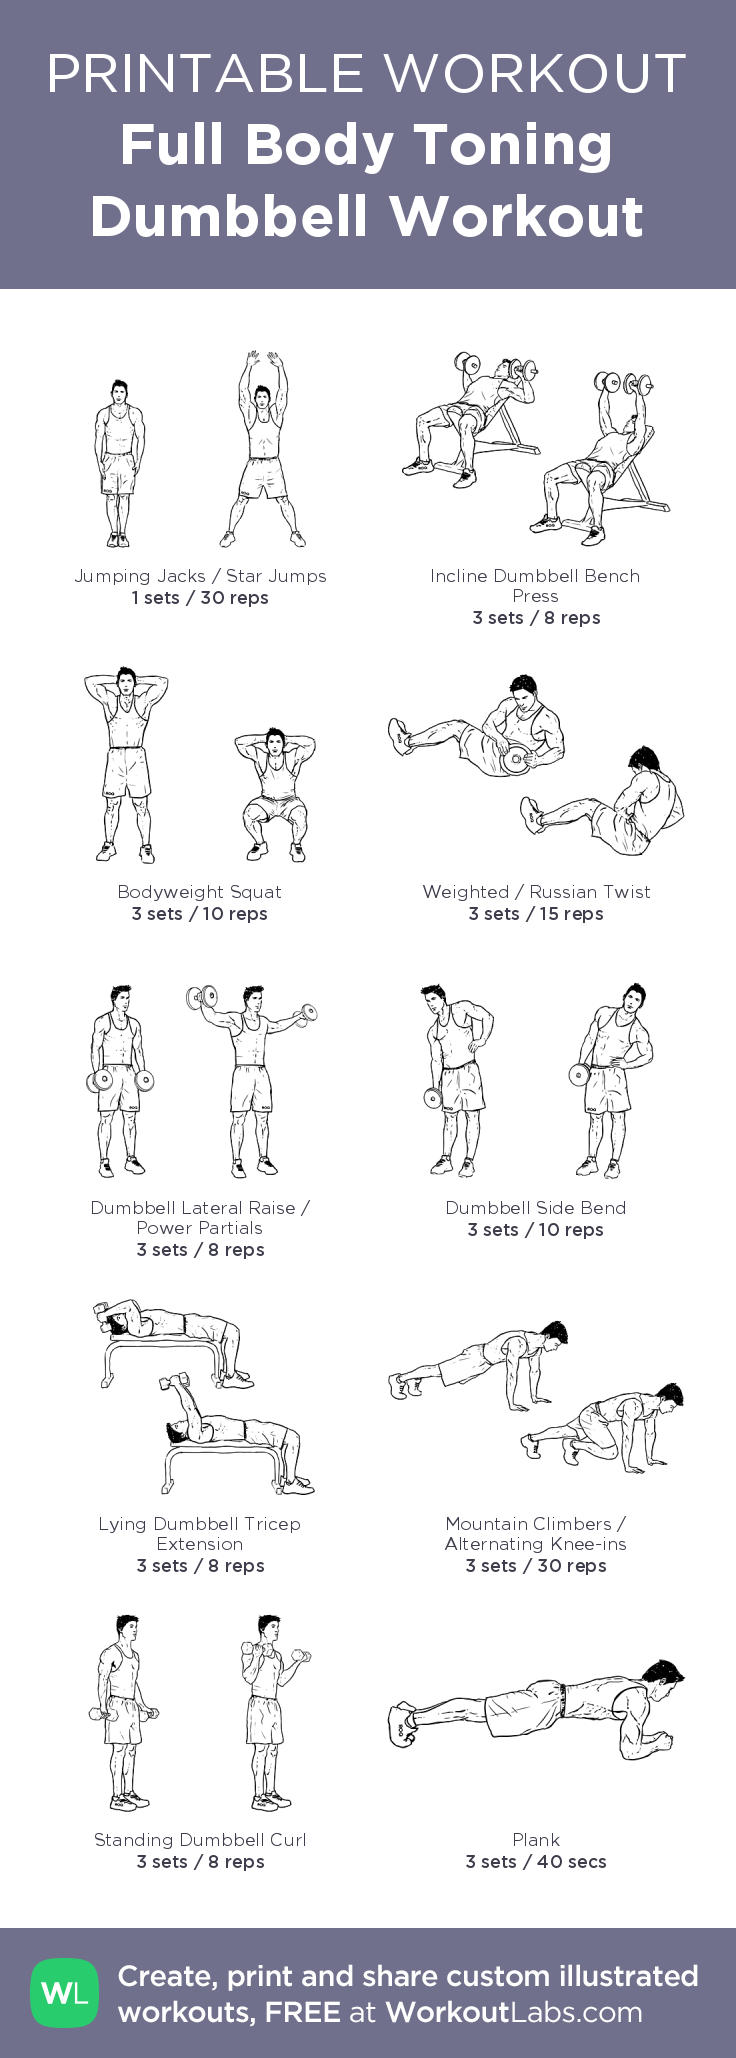 Full Body Toning Dumbbell Workout My Custom Exercise Plan Created